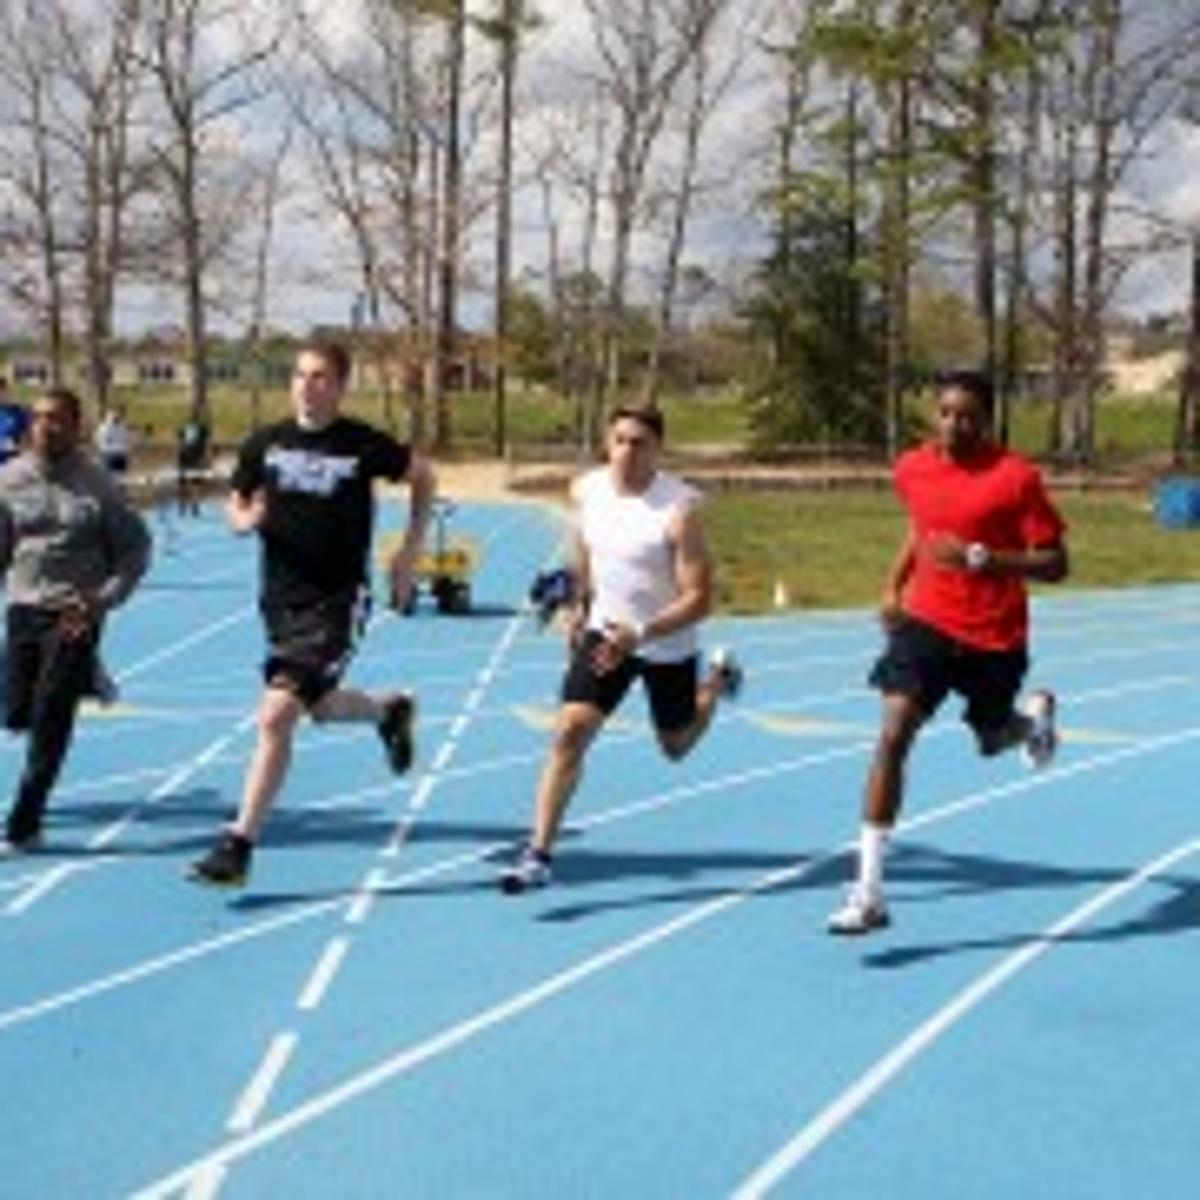 Track and field: 400-meter run is just one lap, but the pain